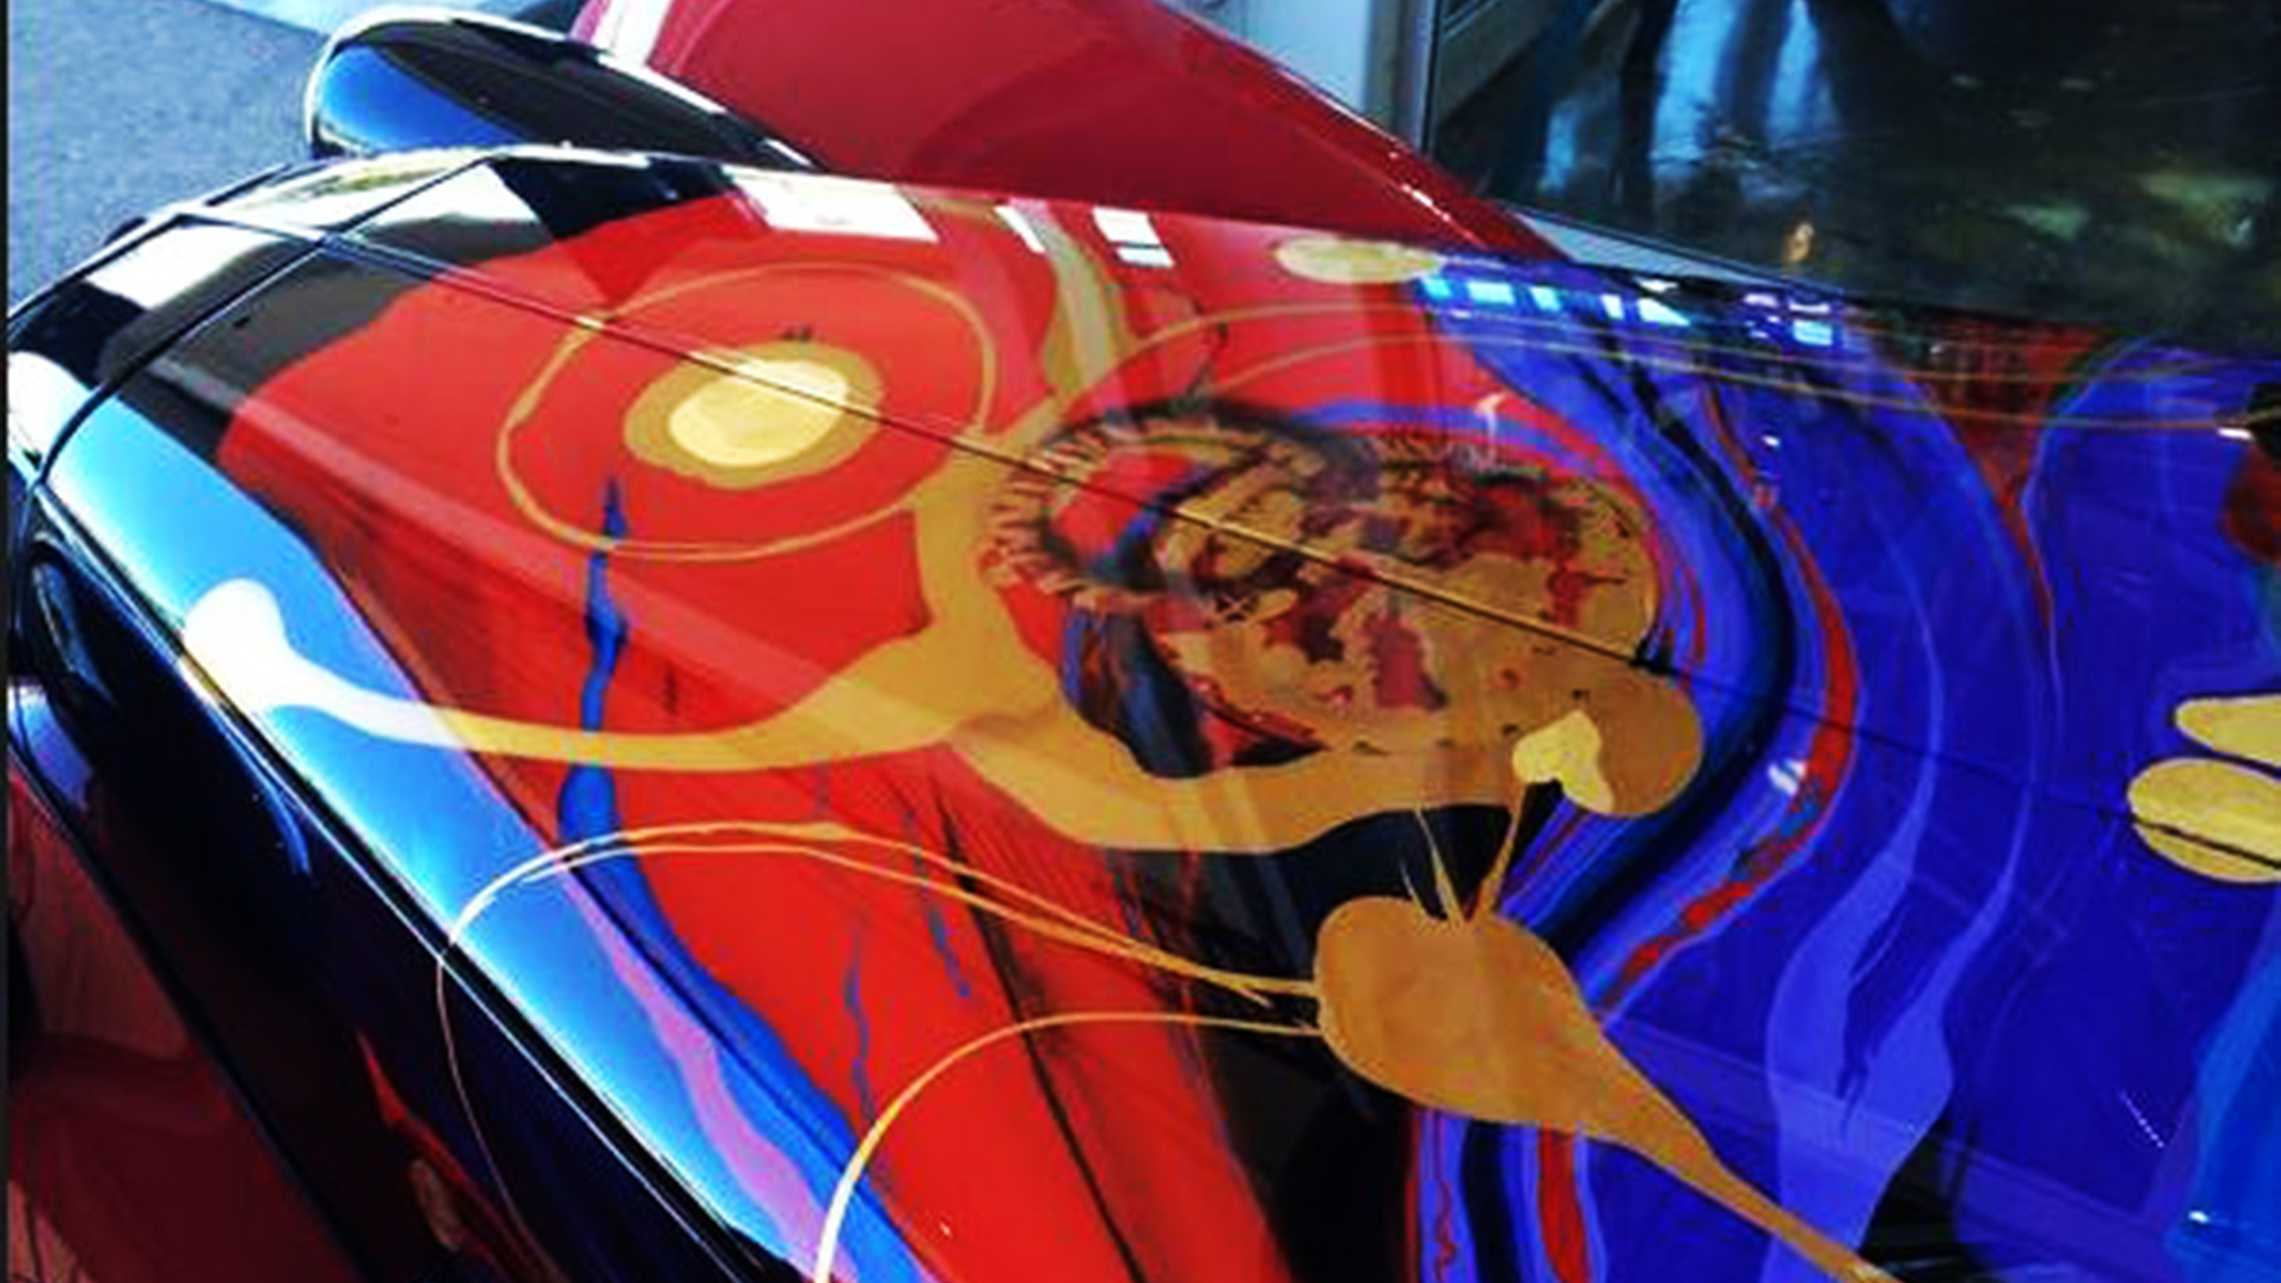 Gold leaf painted car (Aug. 11, 2015)